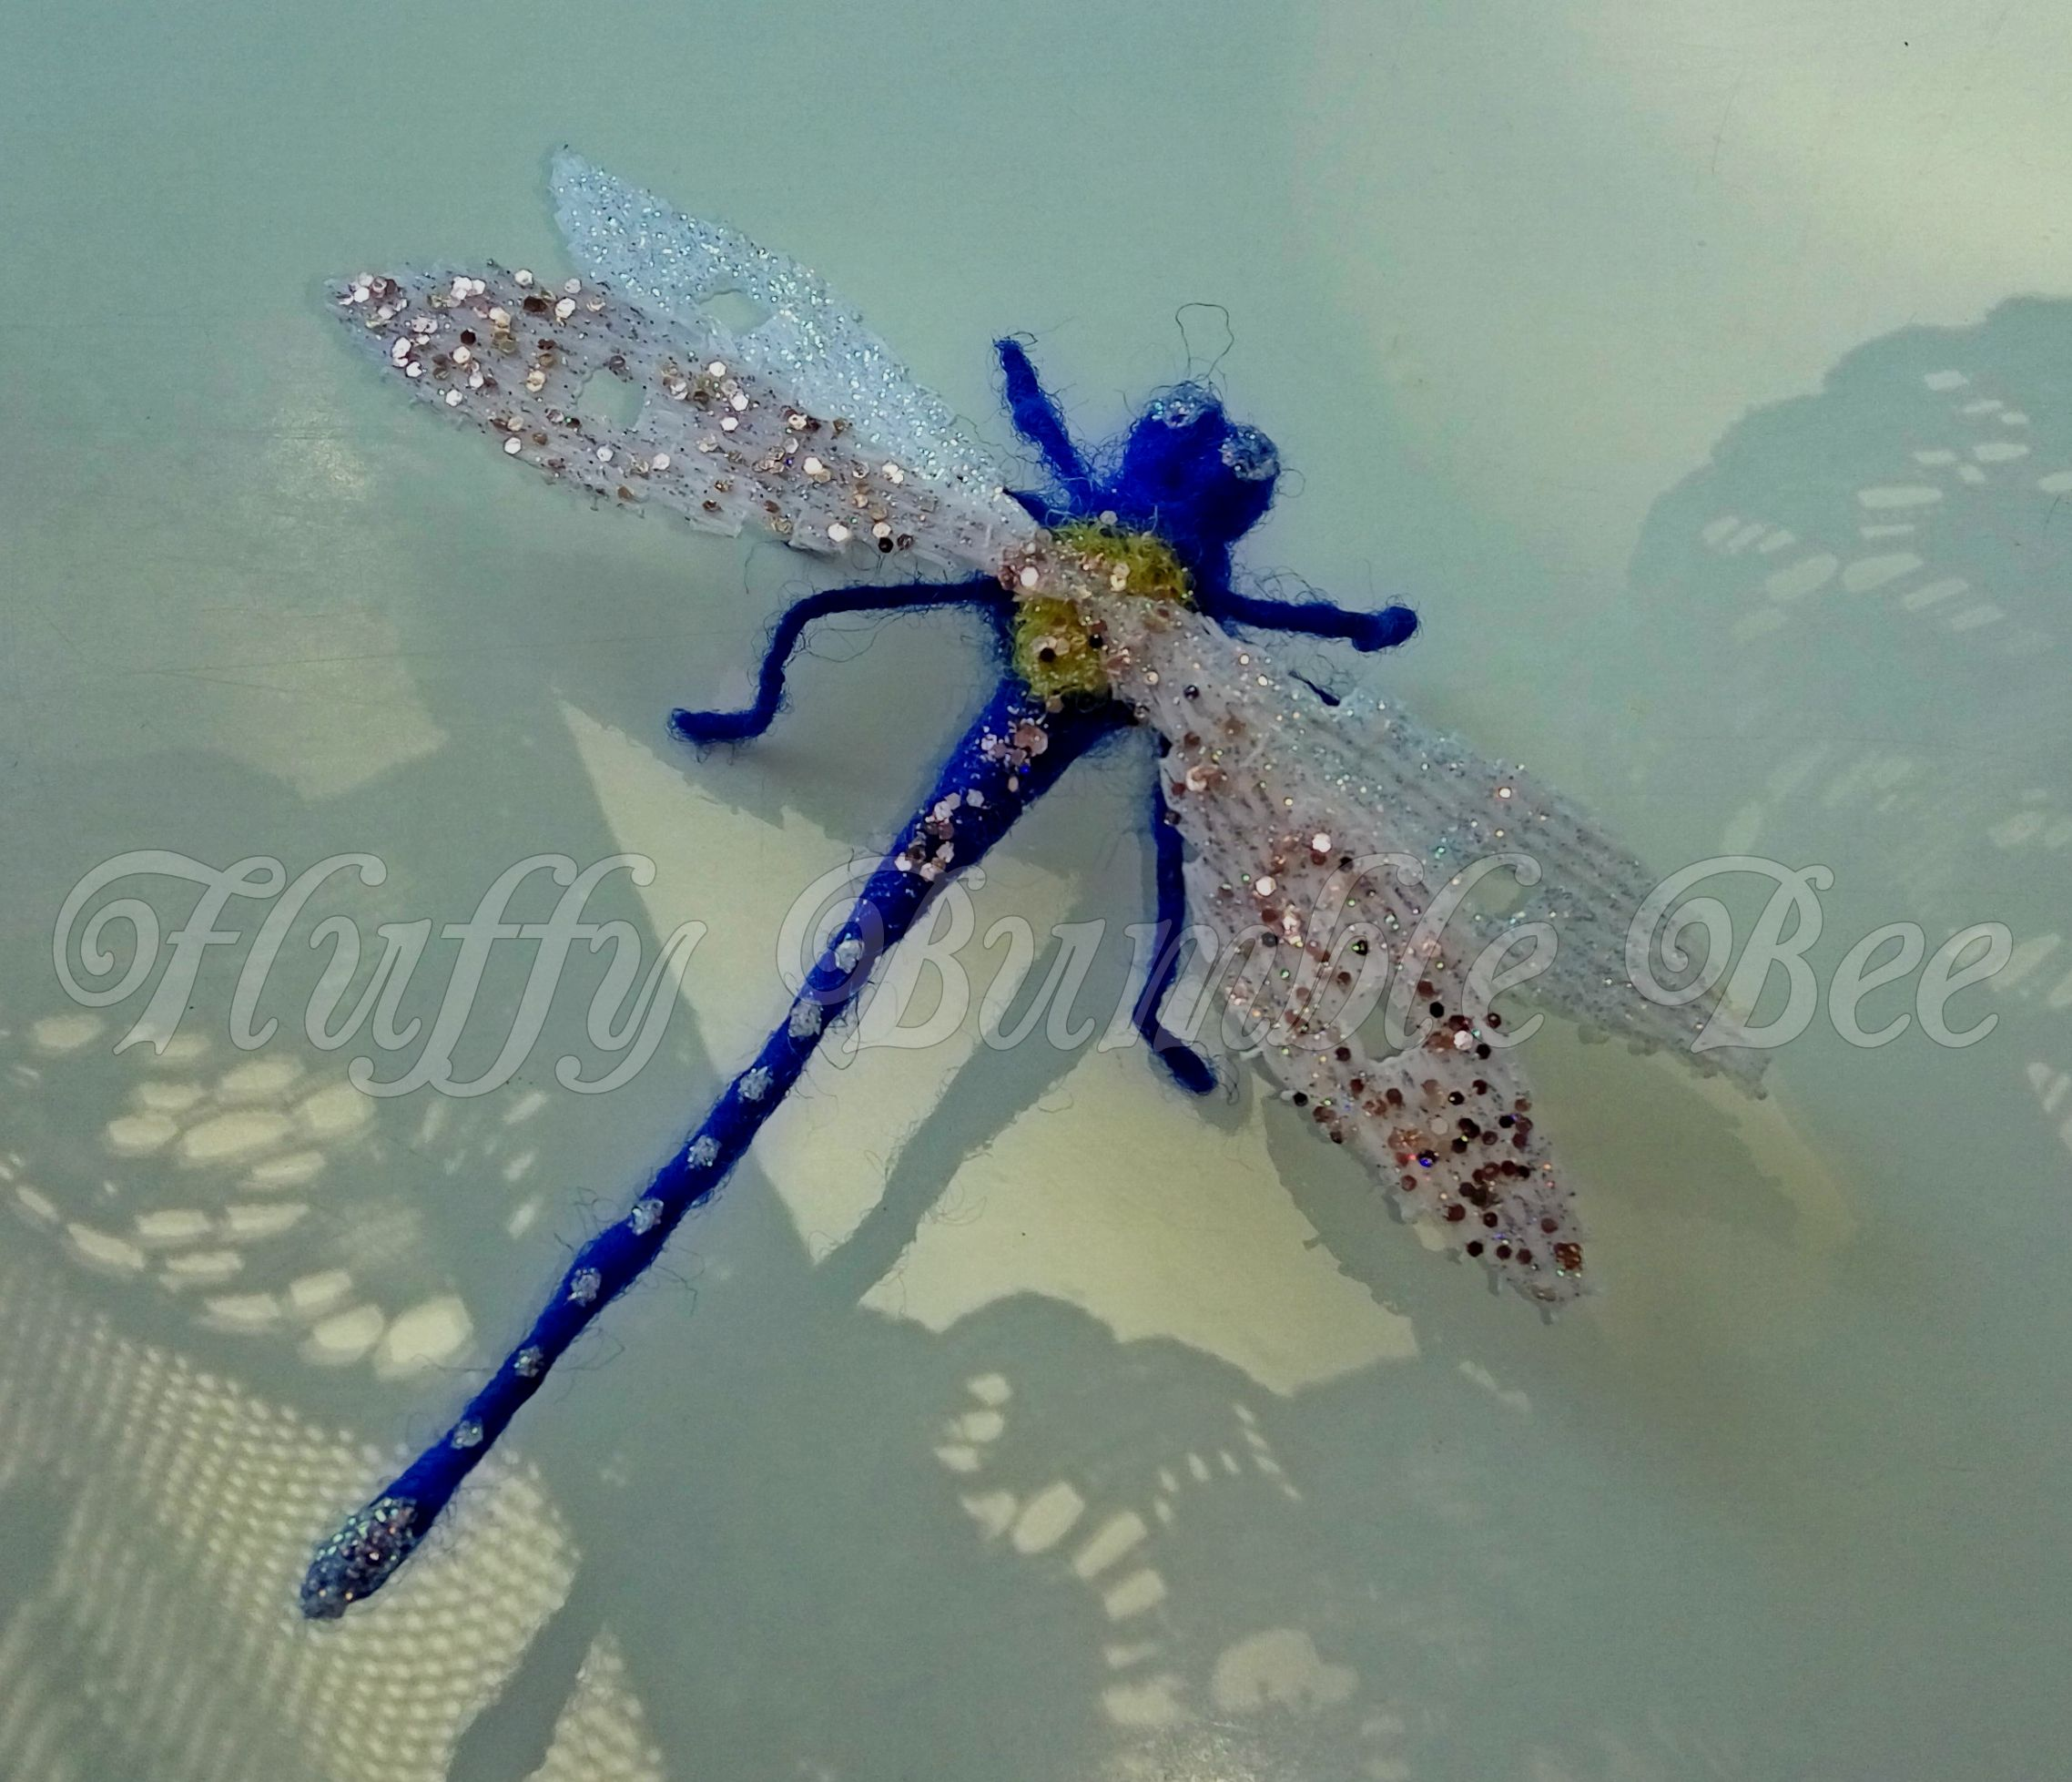 The #Dragonfly with poseable legs (wire) with very sparkly wings ...